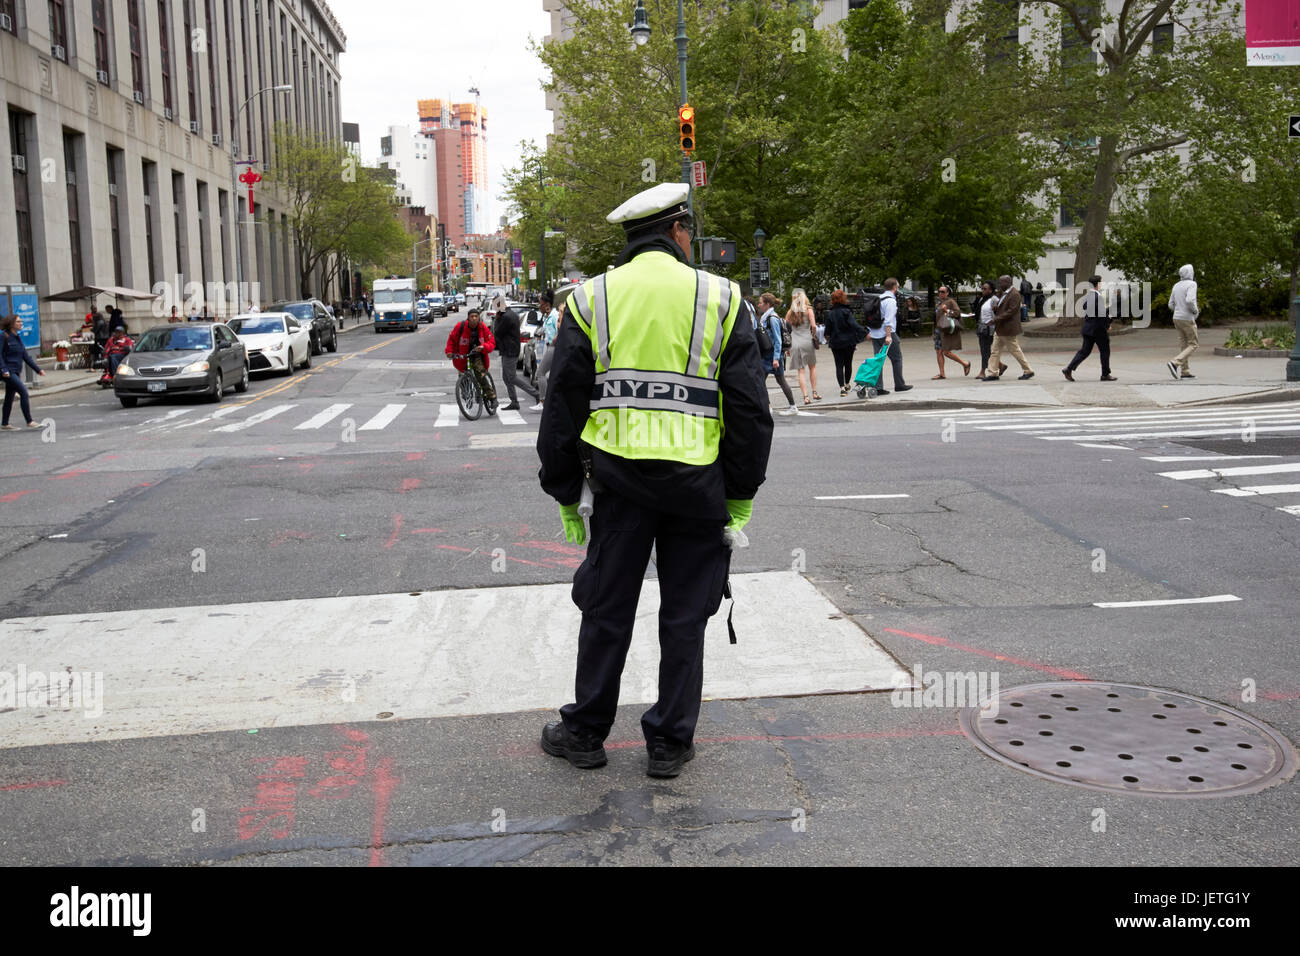 nypd traffic cop on the streets of New York City USA - Stock Image